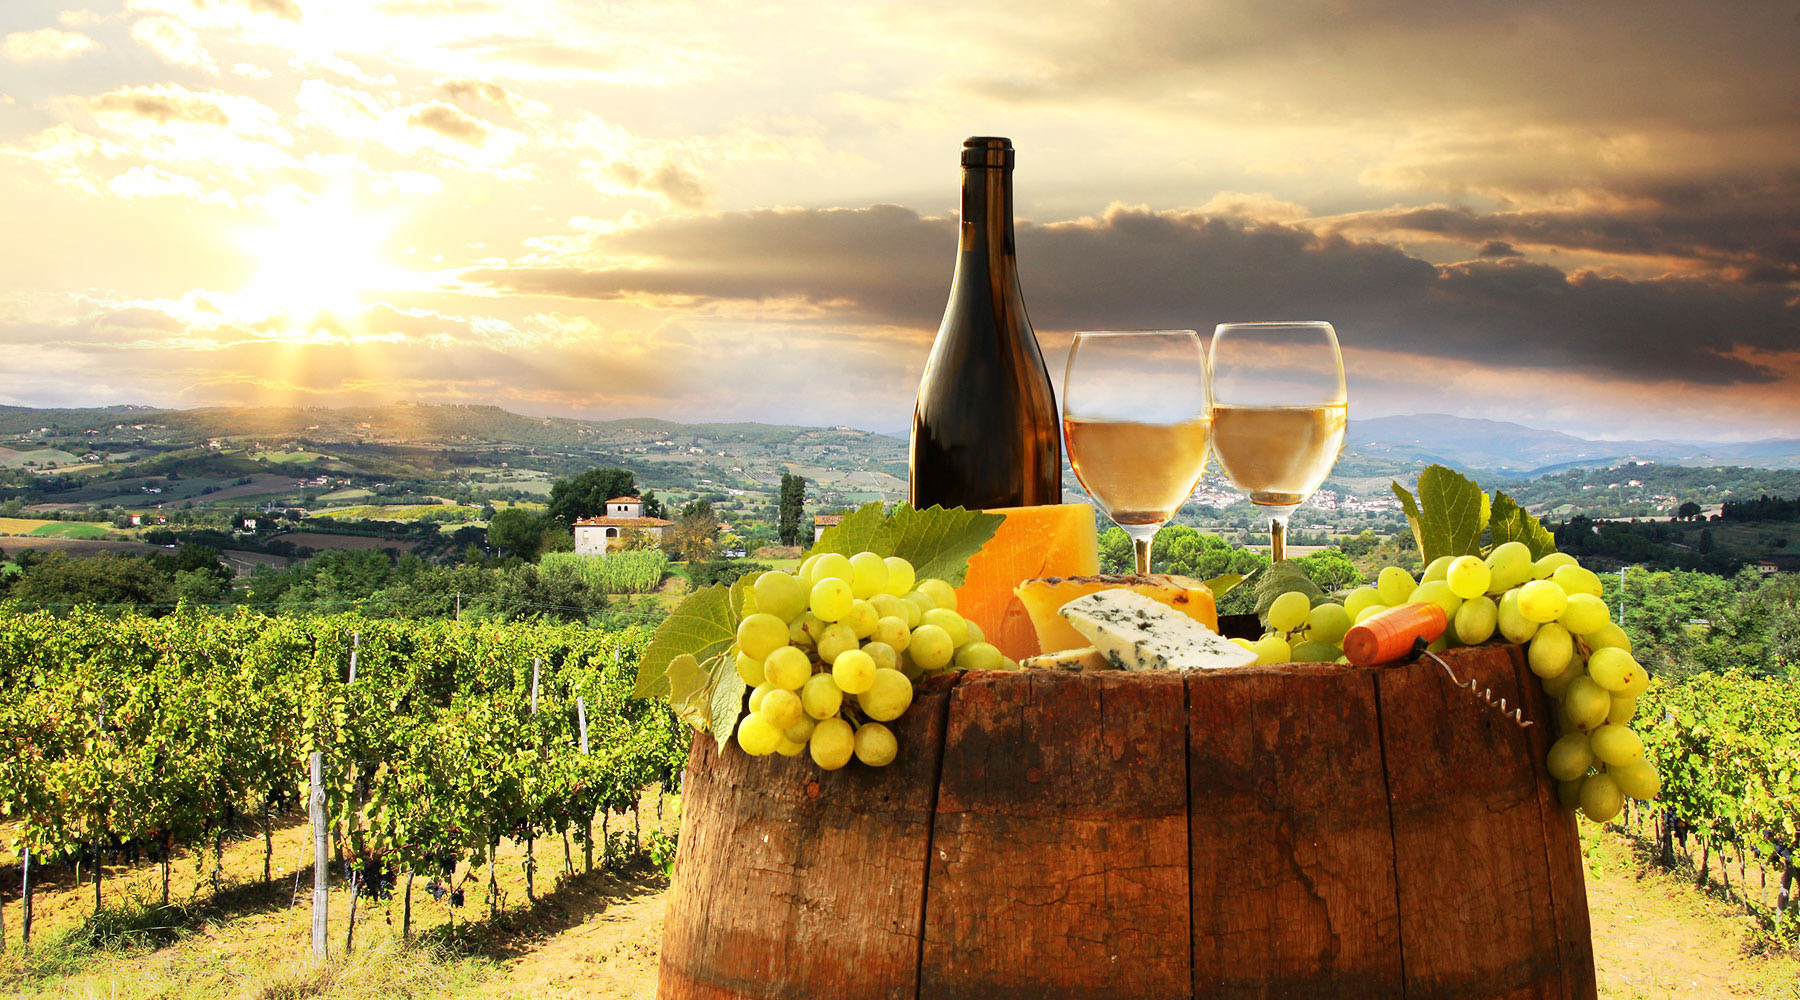 Ten Wine Facts To Impress Your Dinner Guests